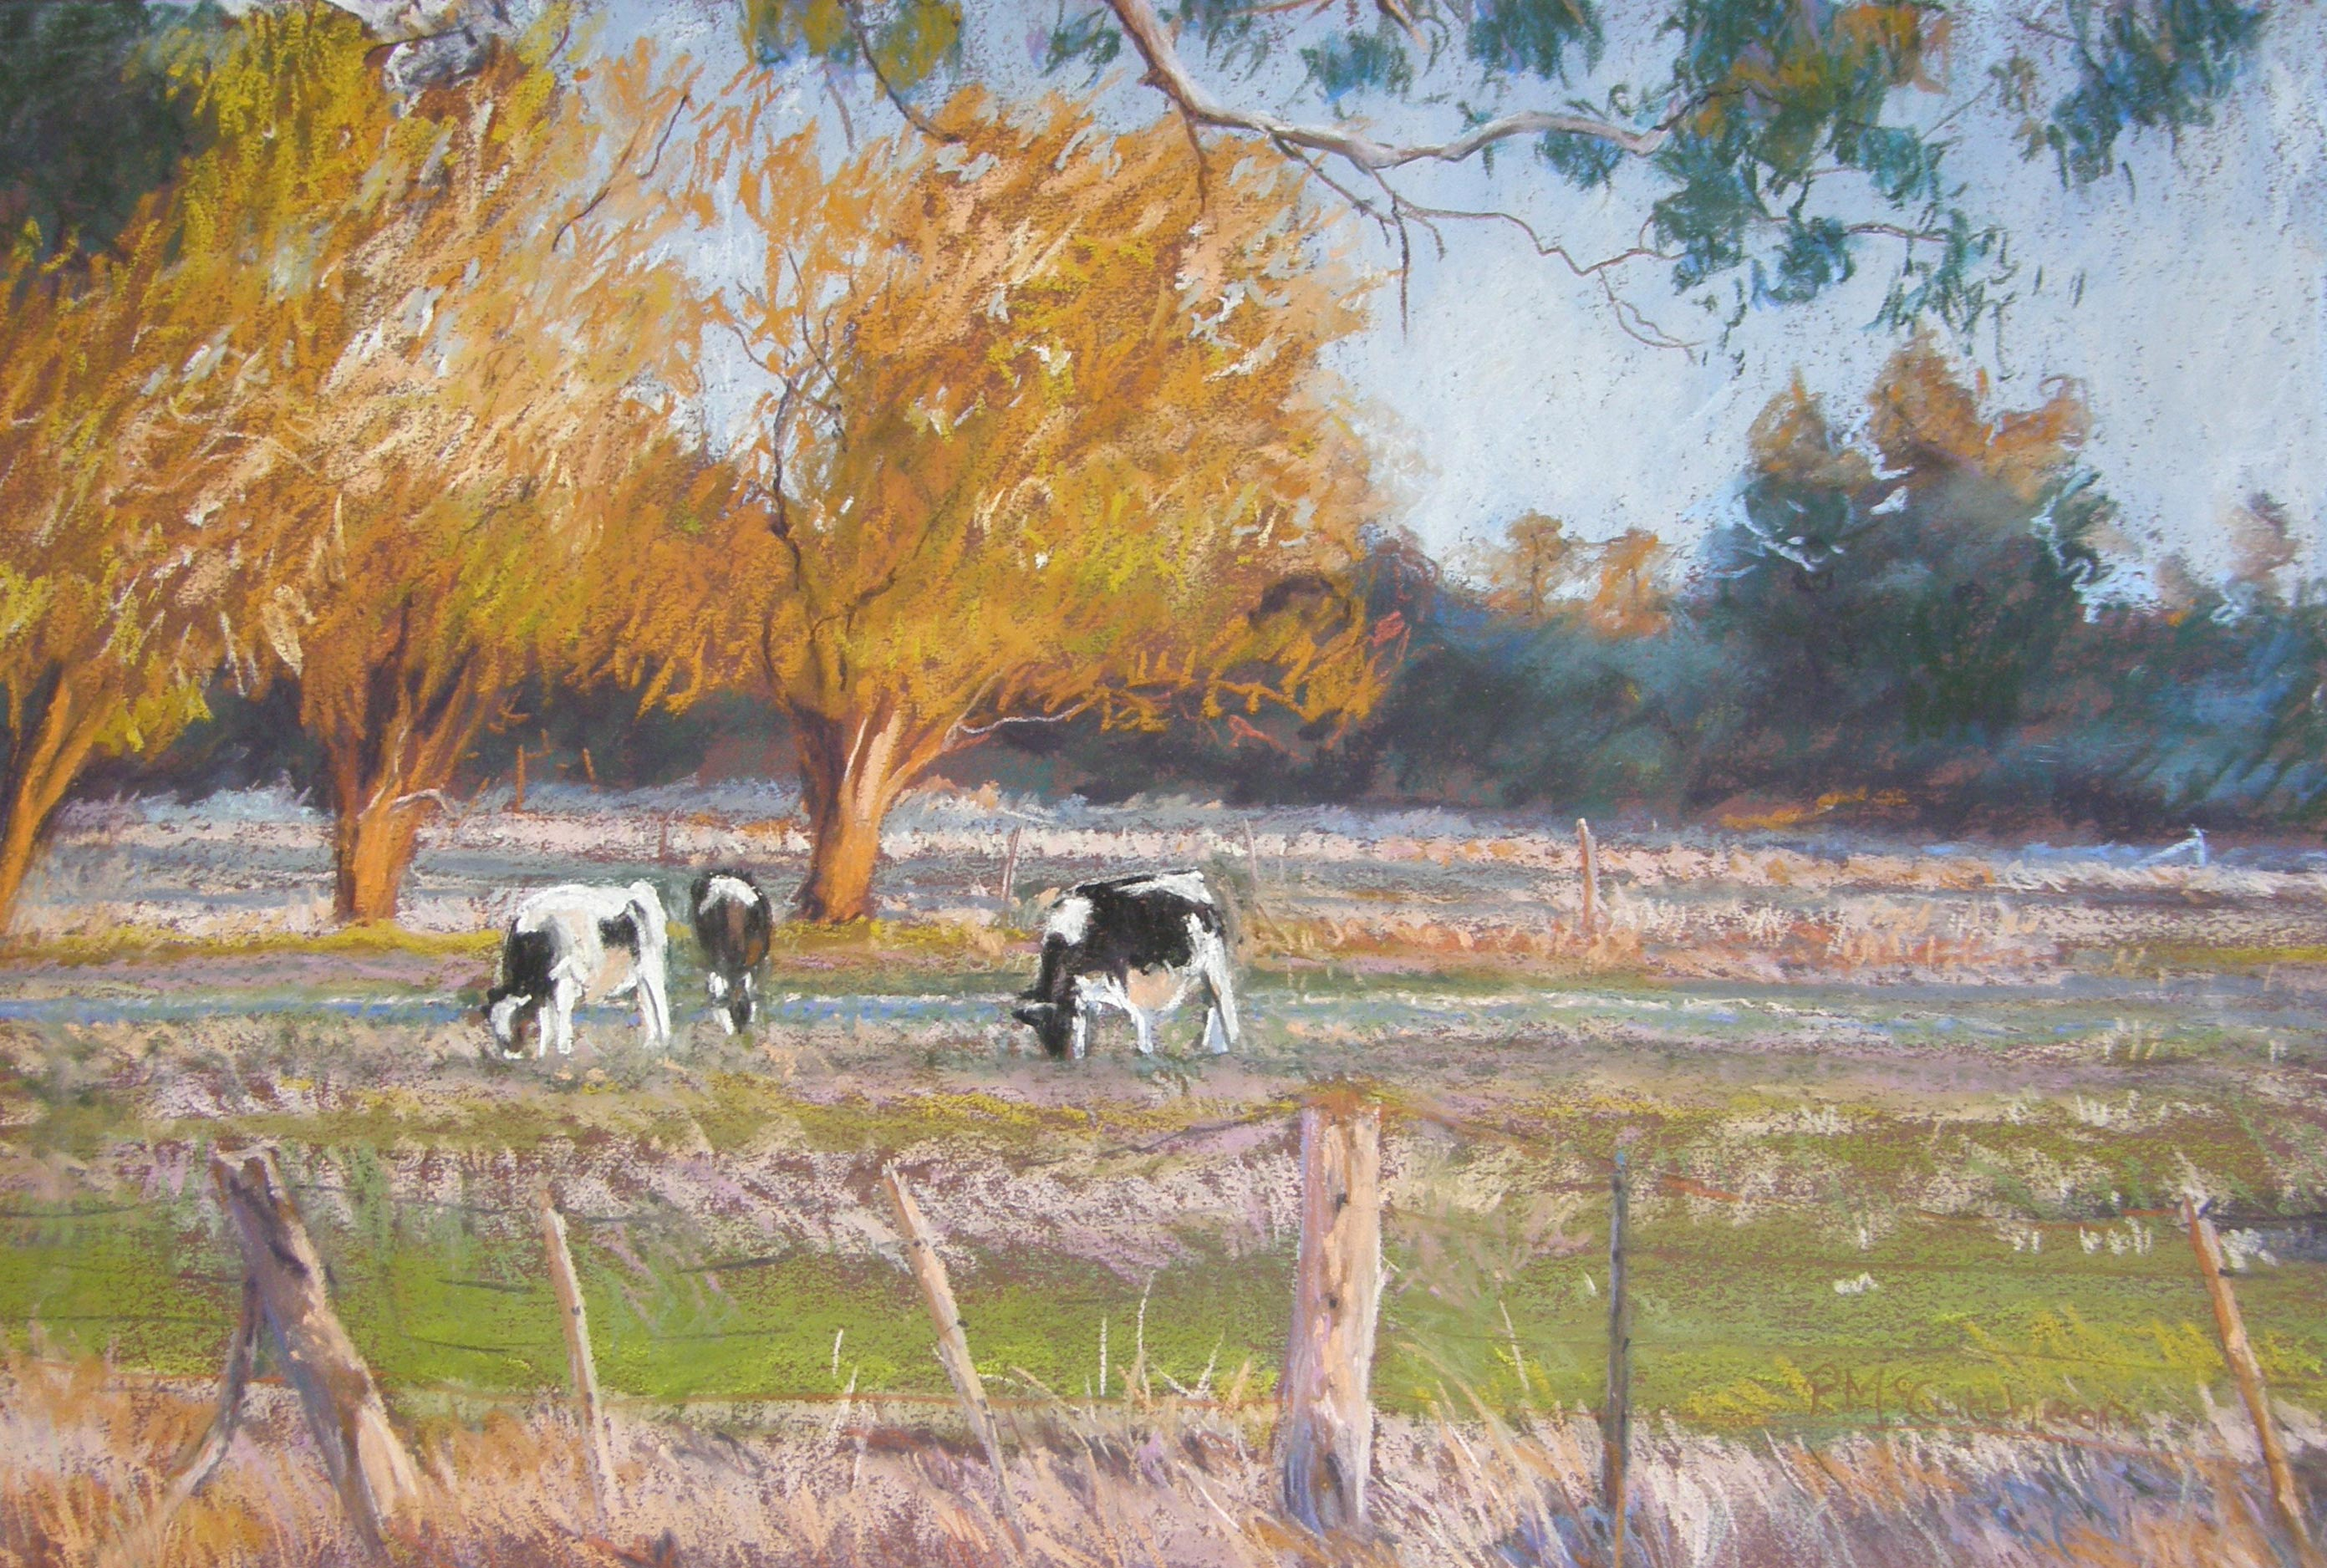 Evening grazing